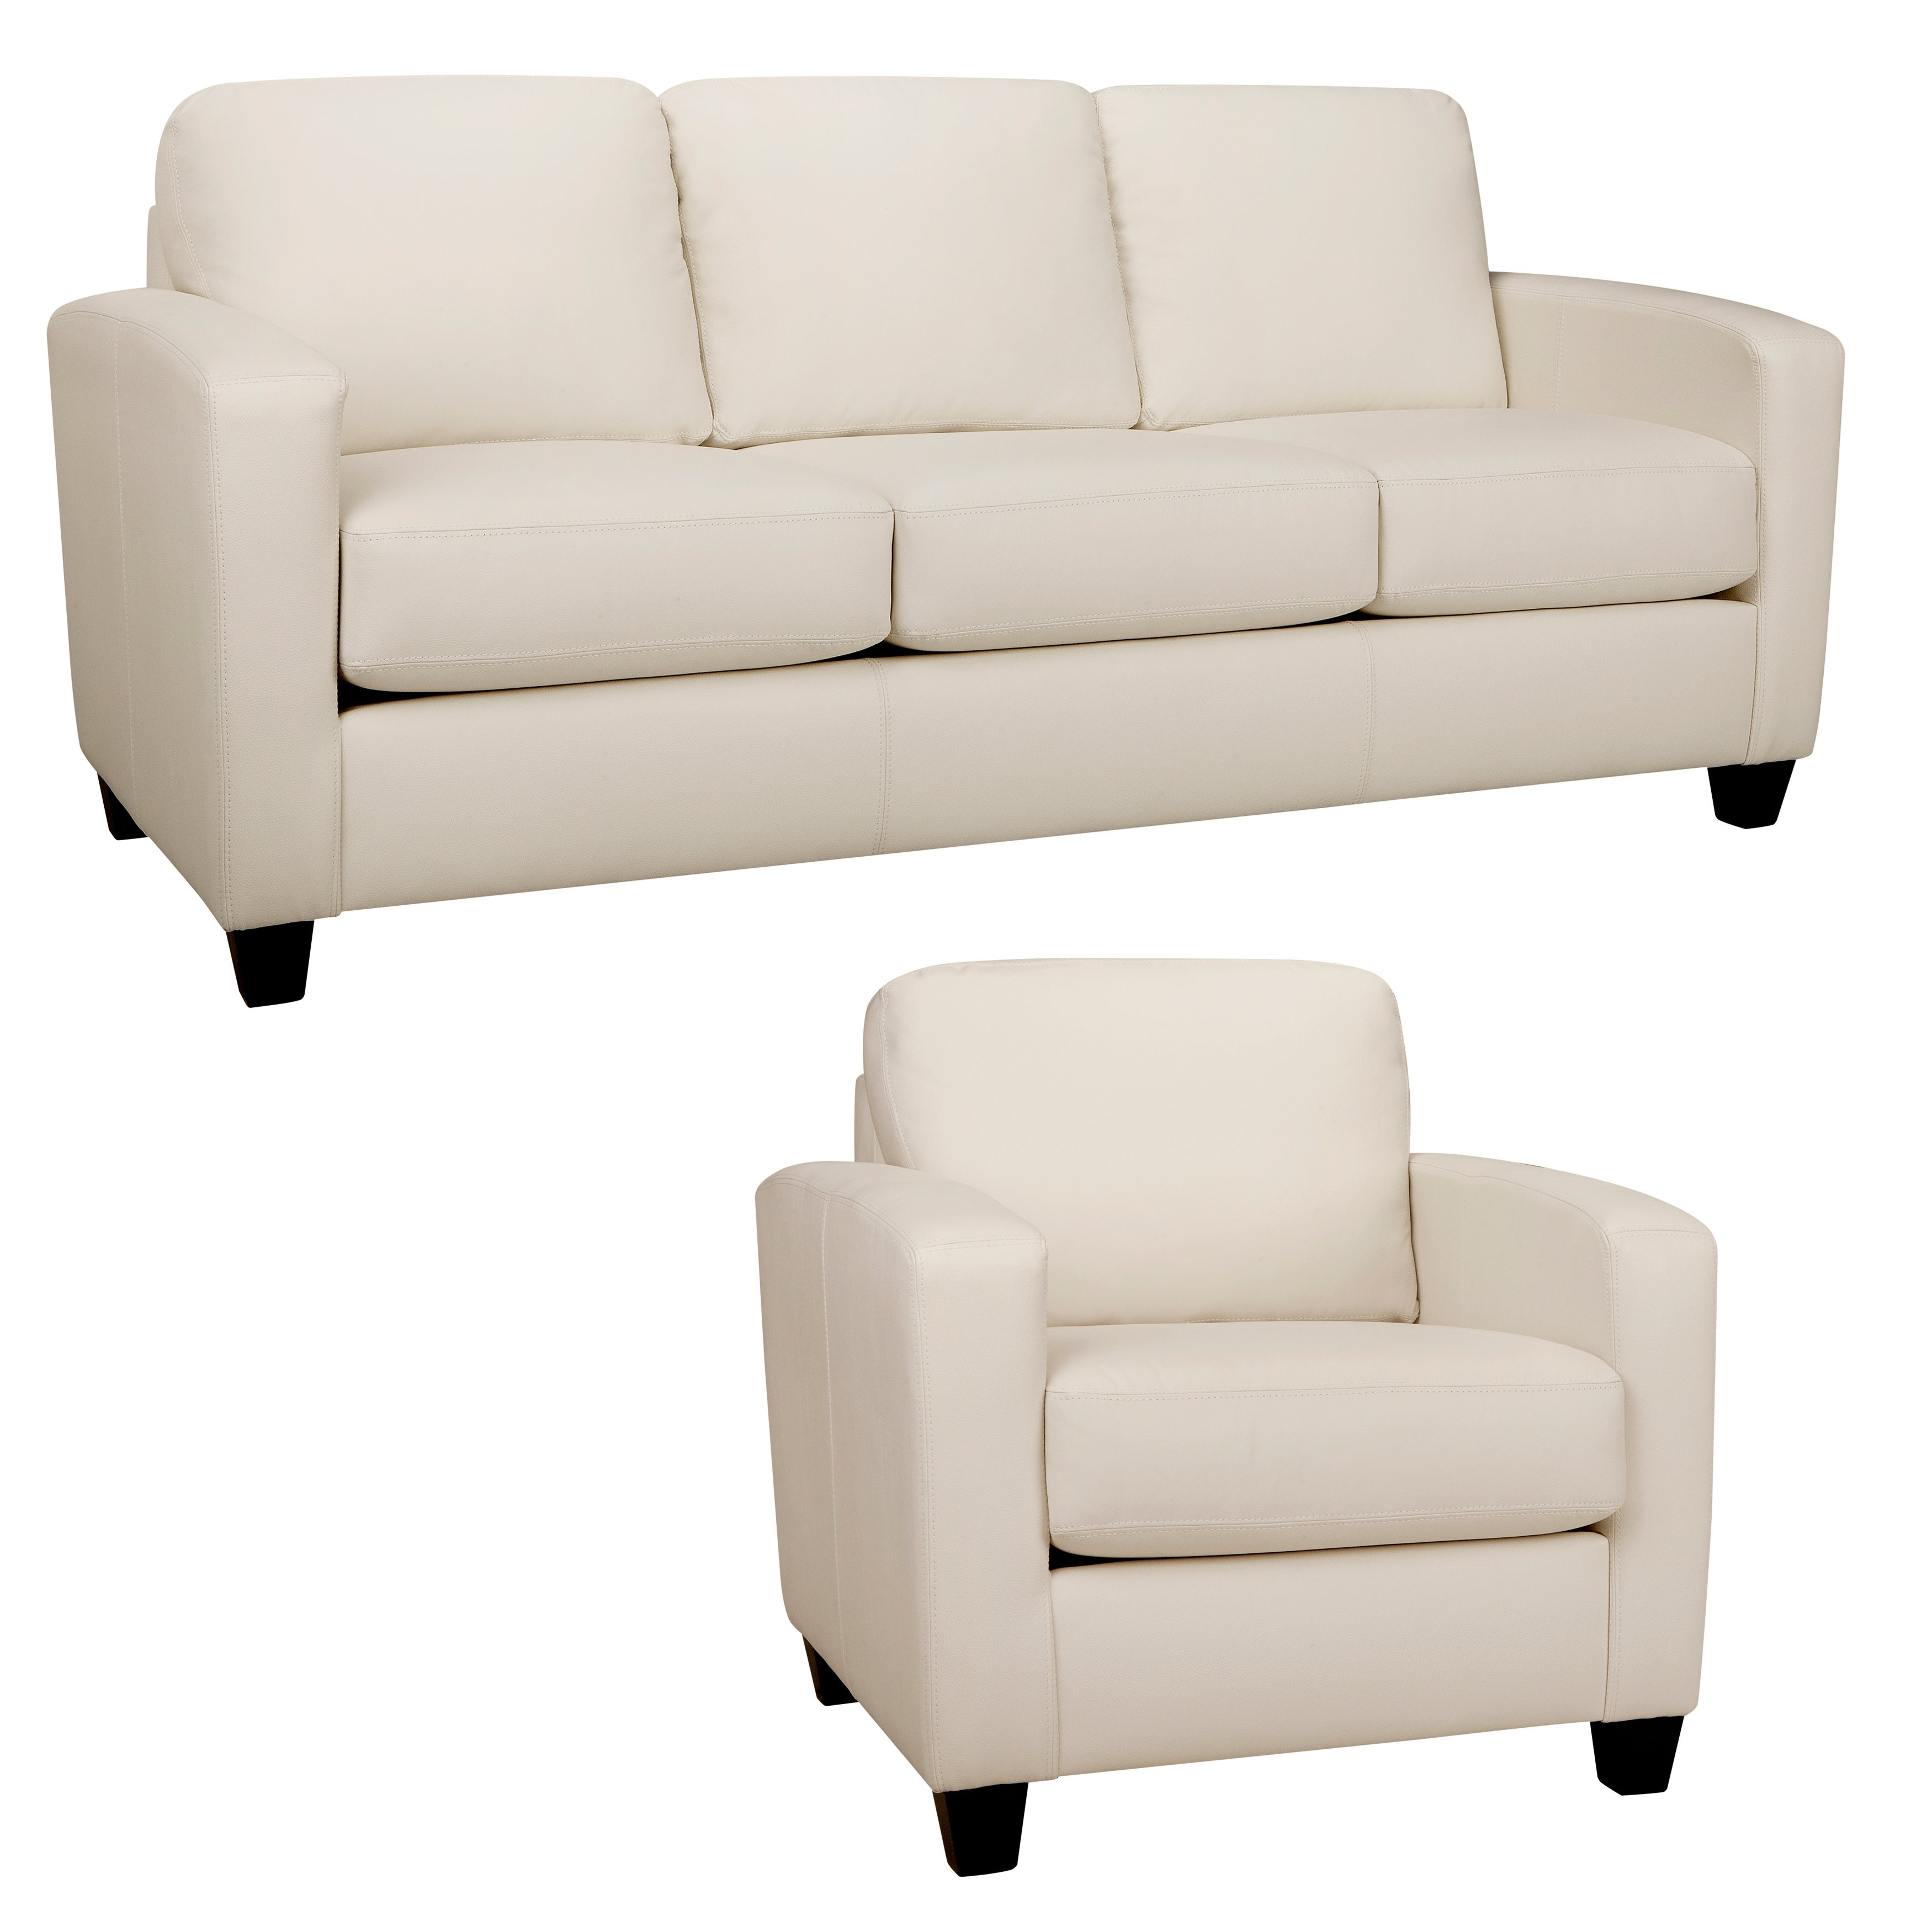 Bryce White Italian Leather Sofa and Chair